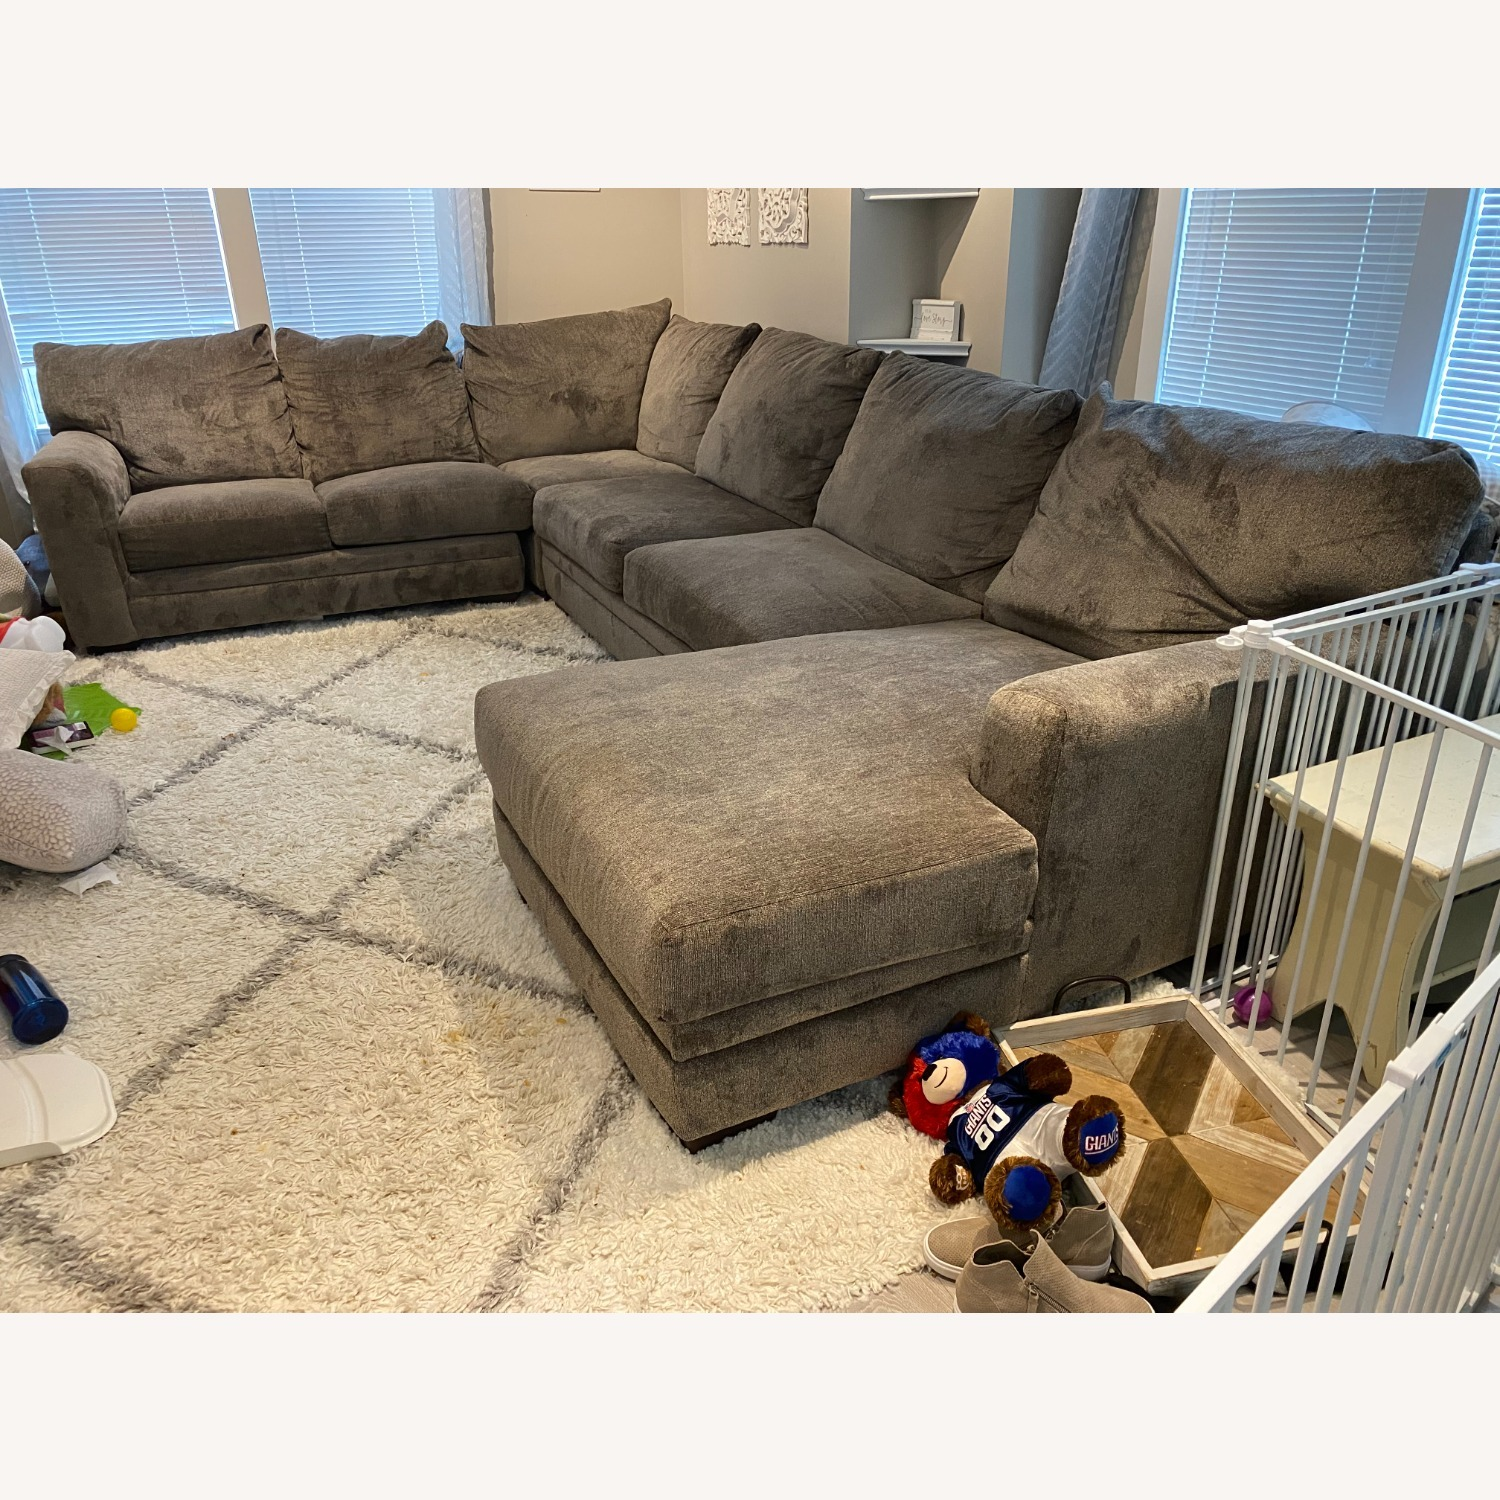 Bob's Discount Furniture Luxe Sectional - image-0